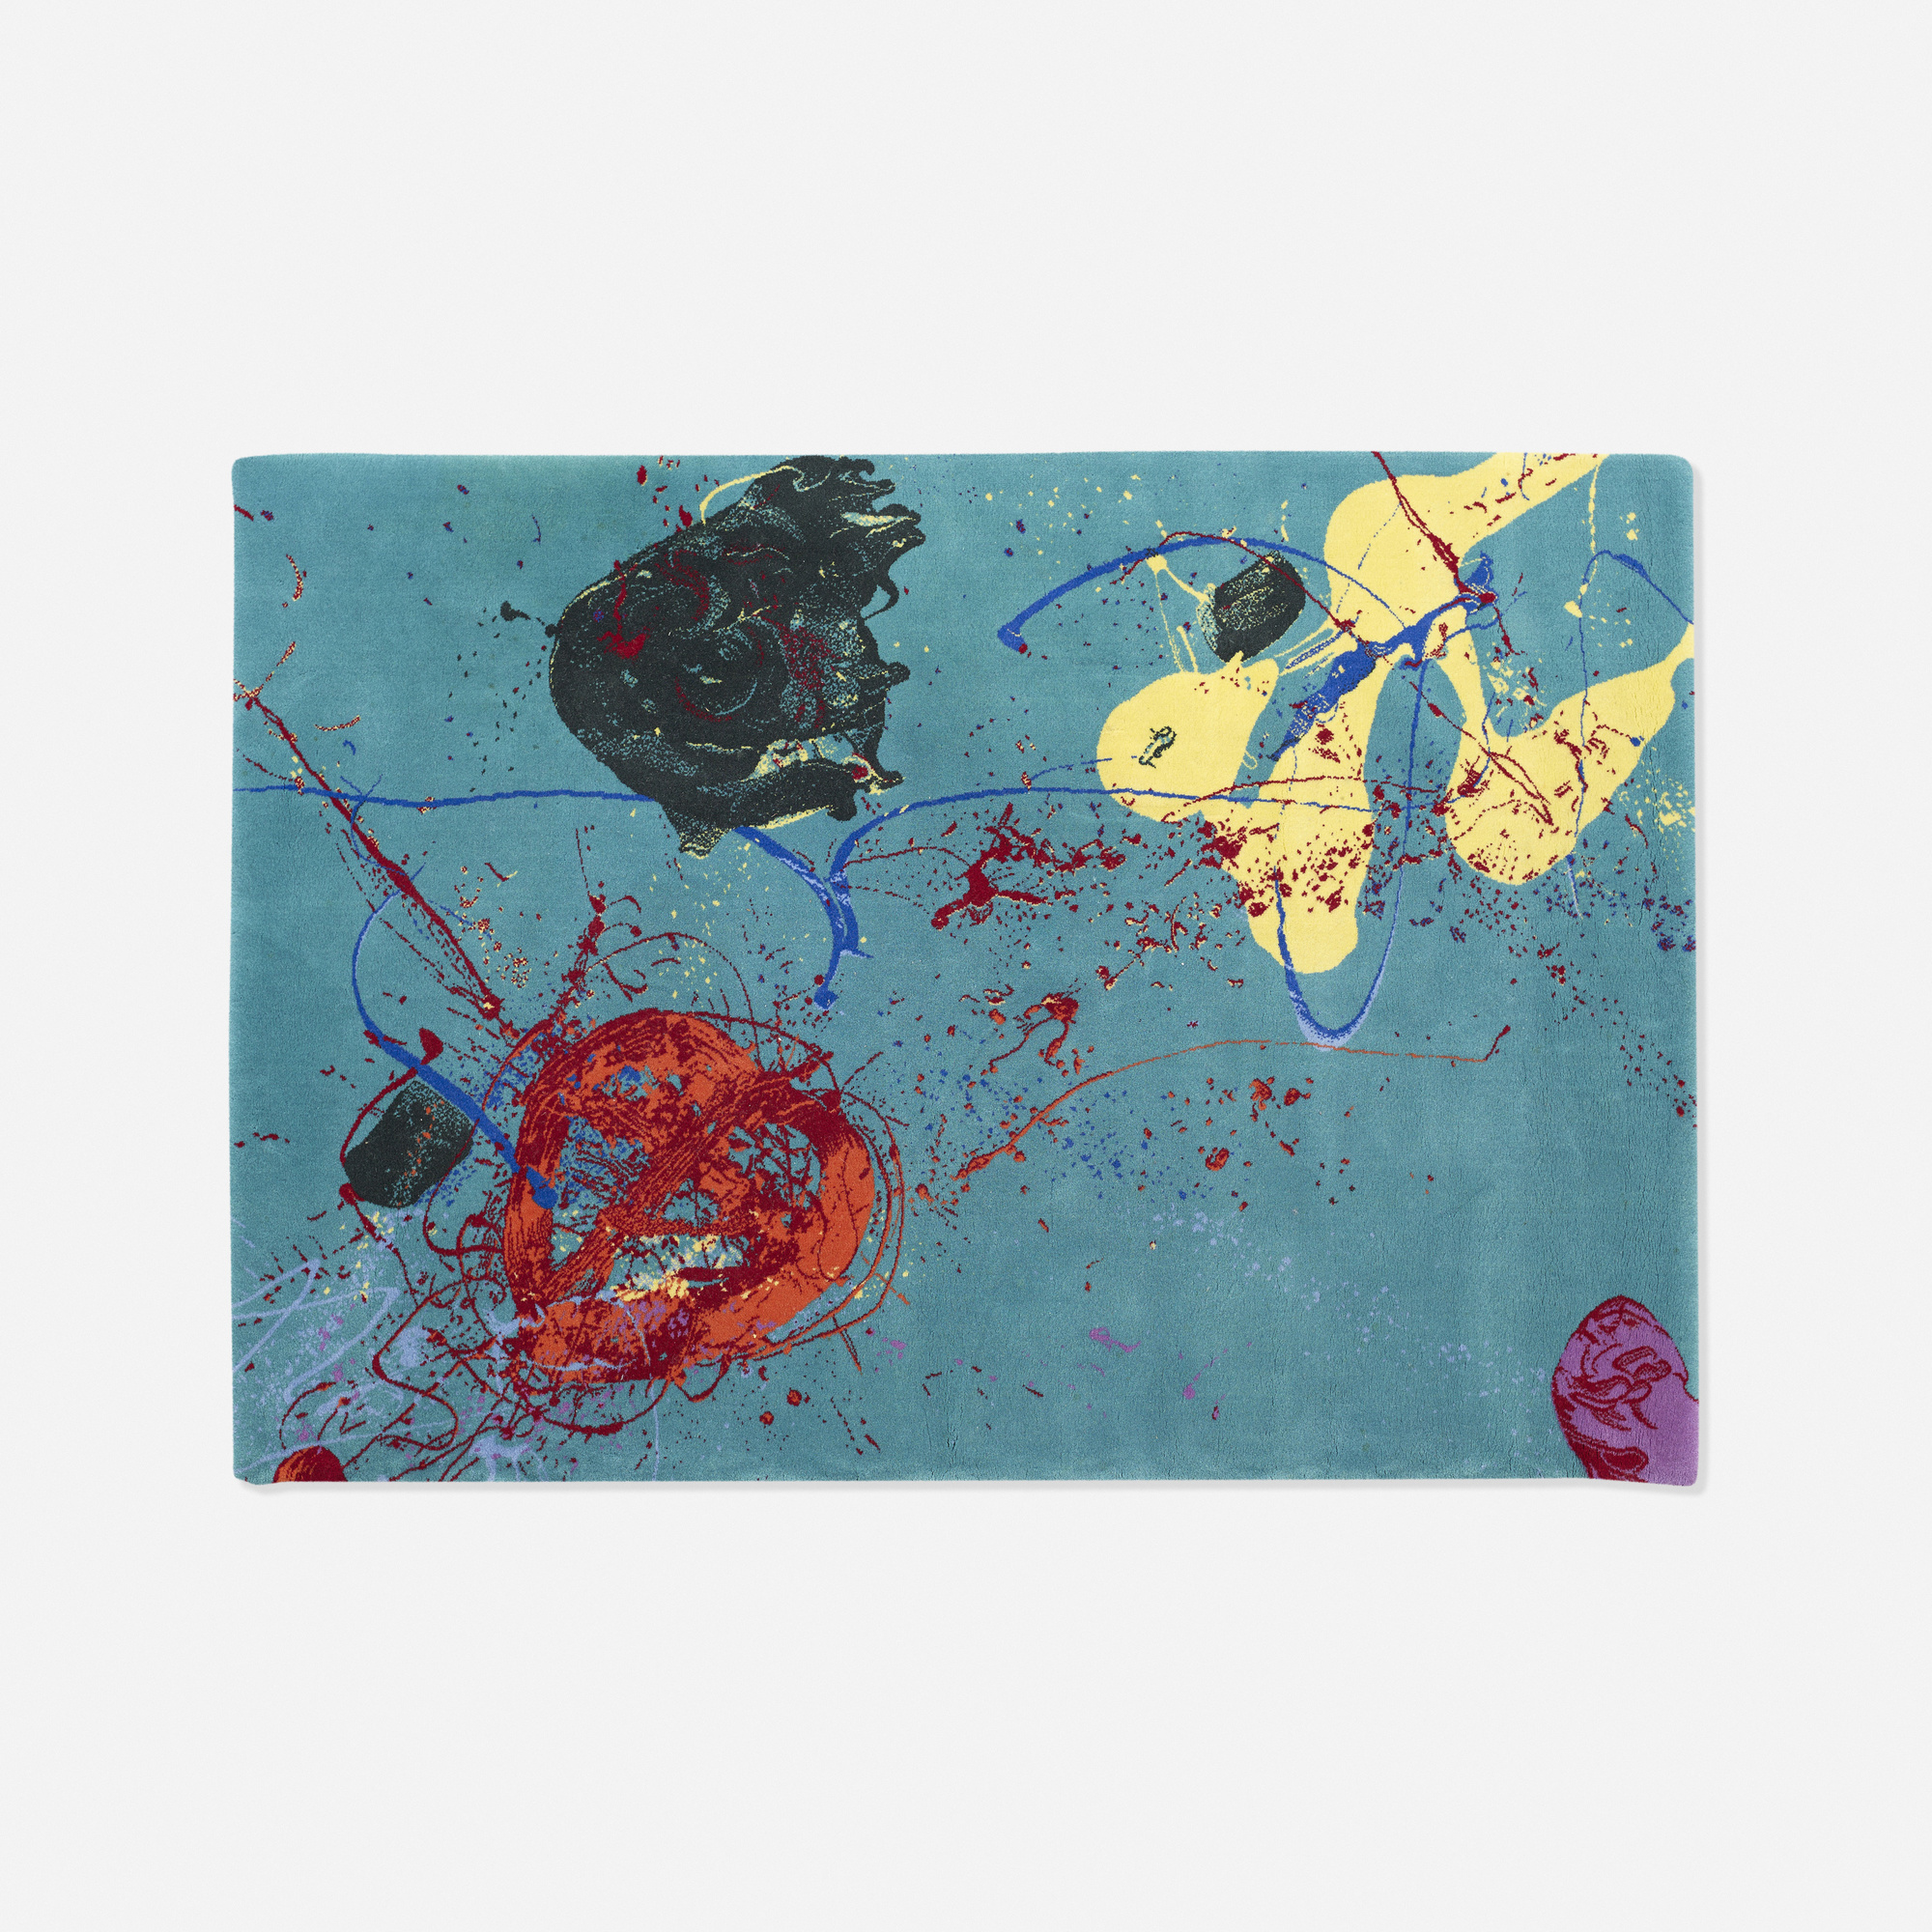 259: Sam Francis / carpet for Arterior Collection (1 of 1)